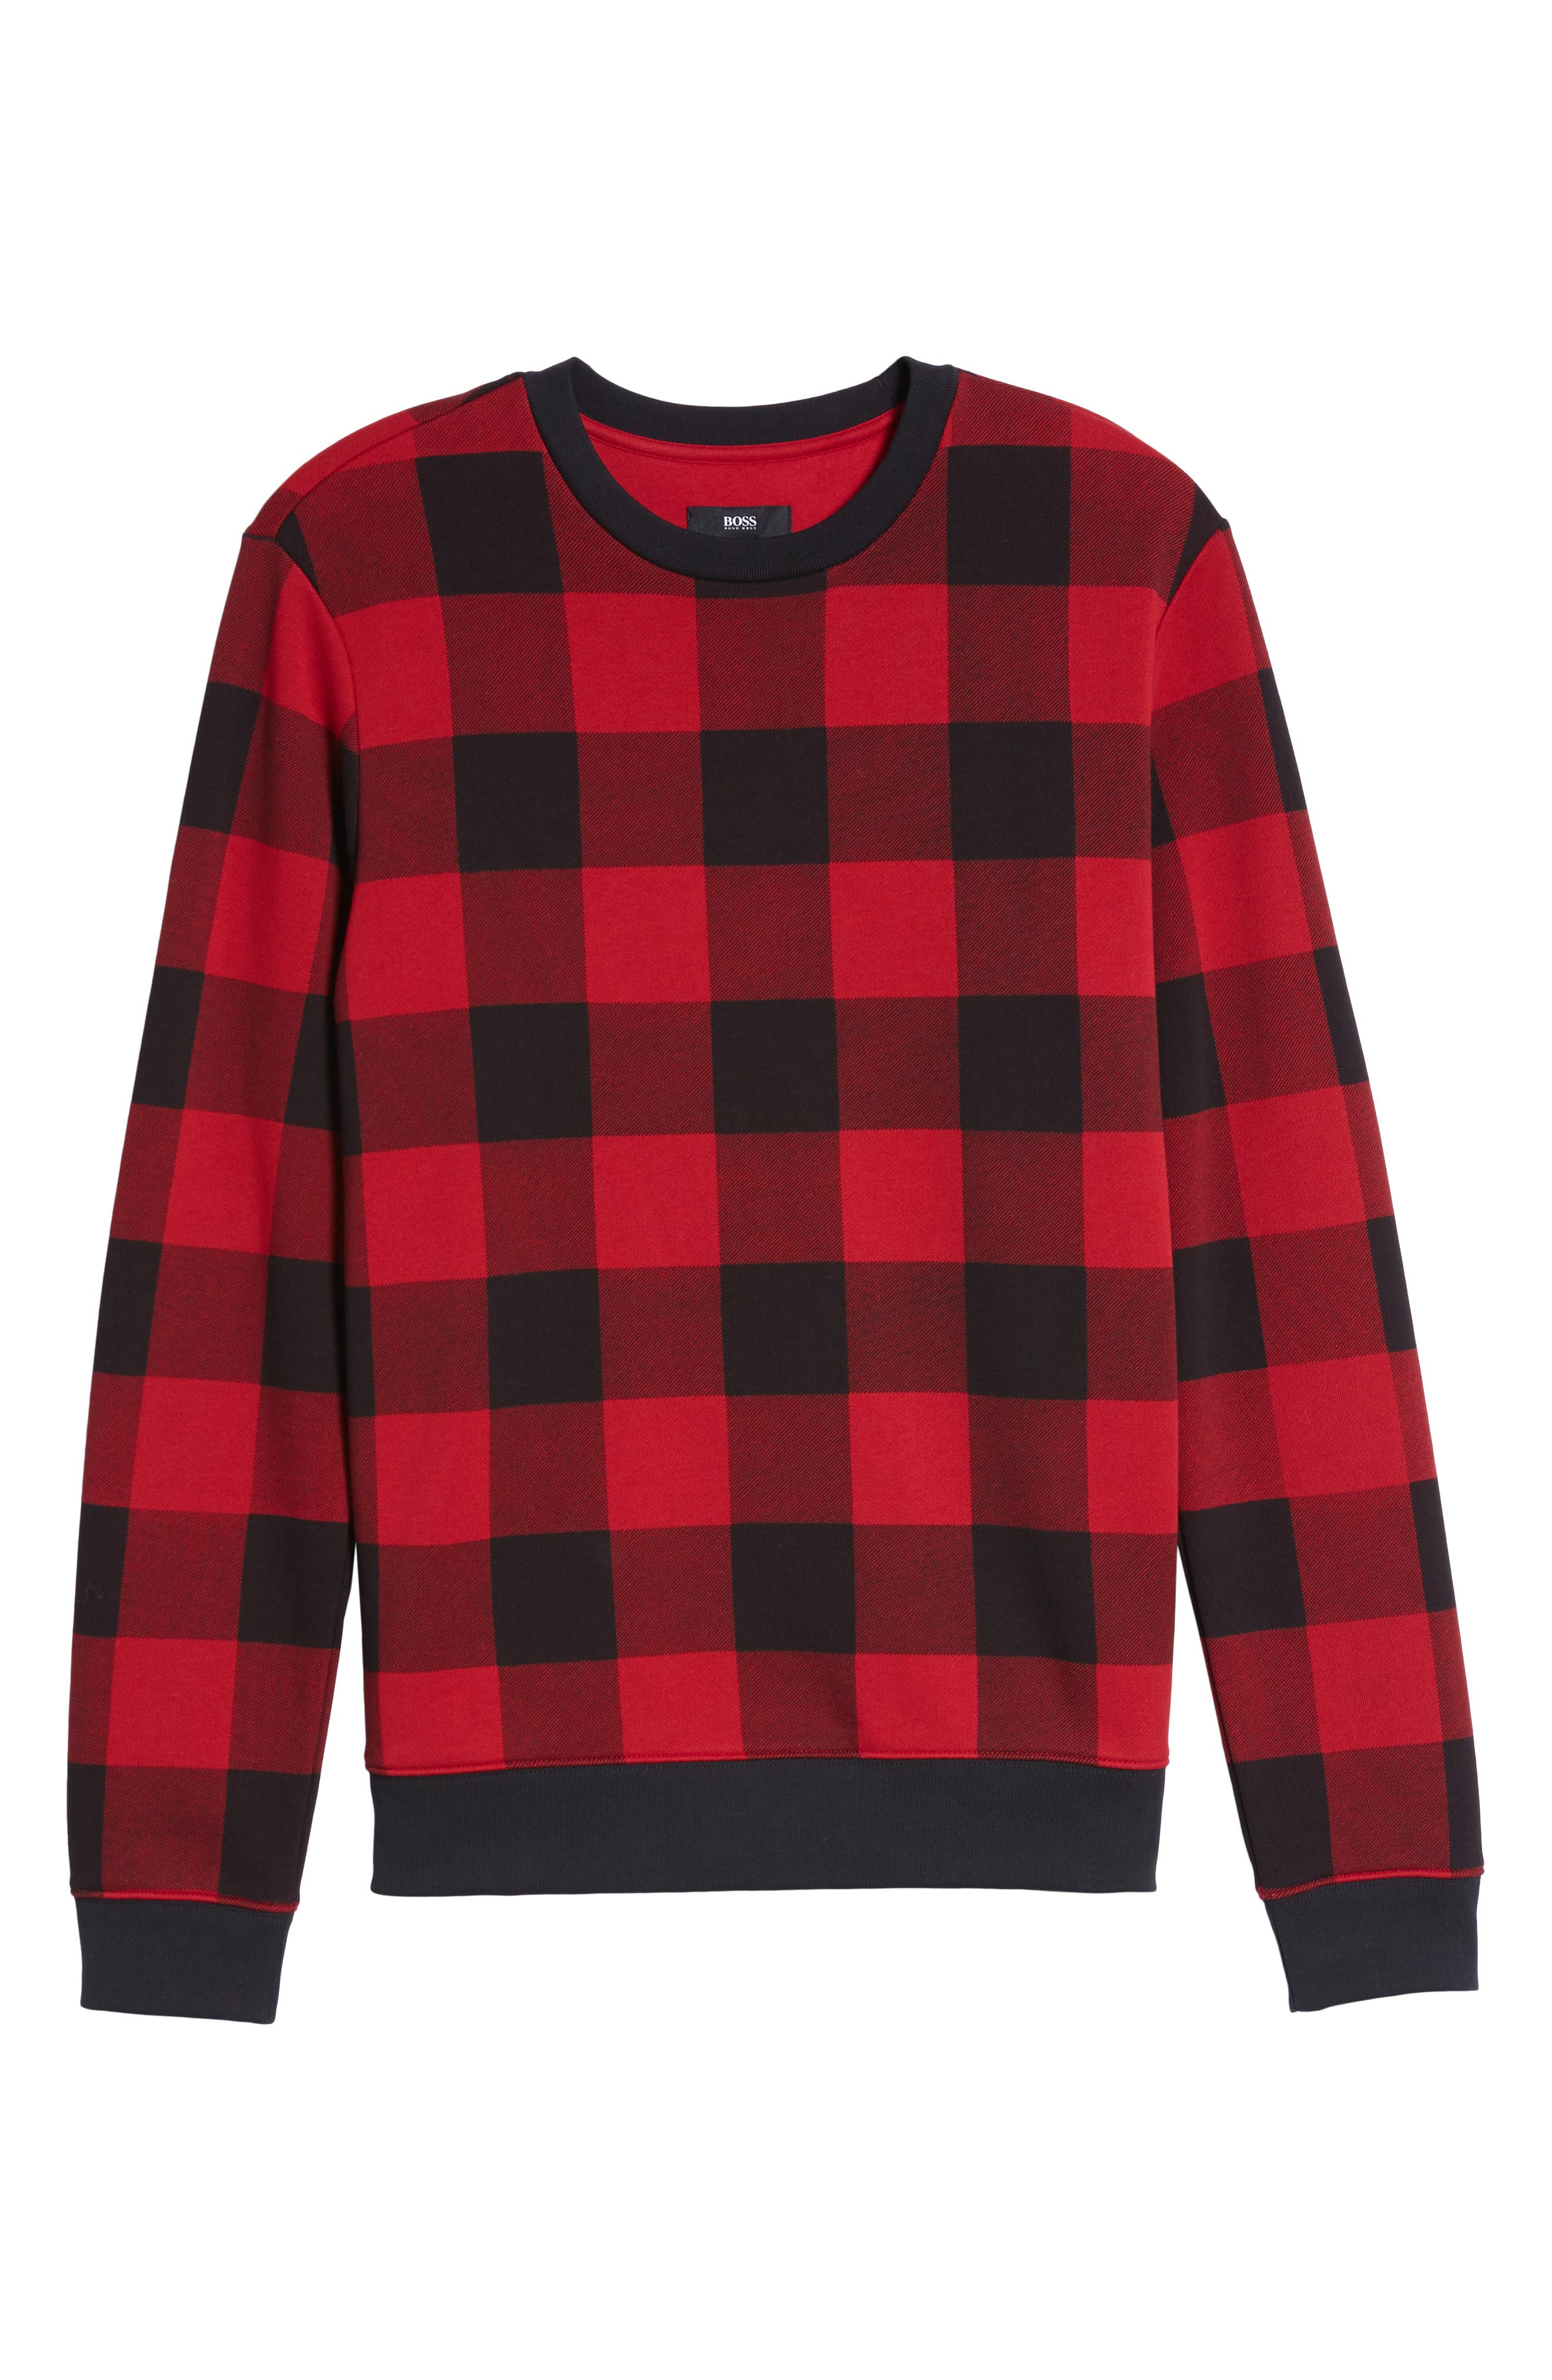 Skubic Check Slim Fit Sweater,                             Alternate thumbnail 6, color,                             Red